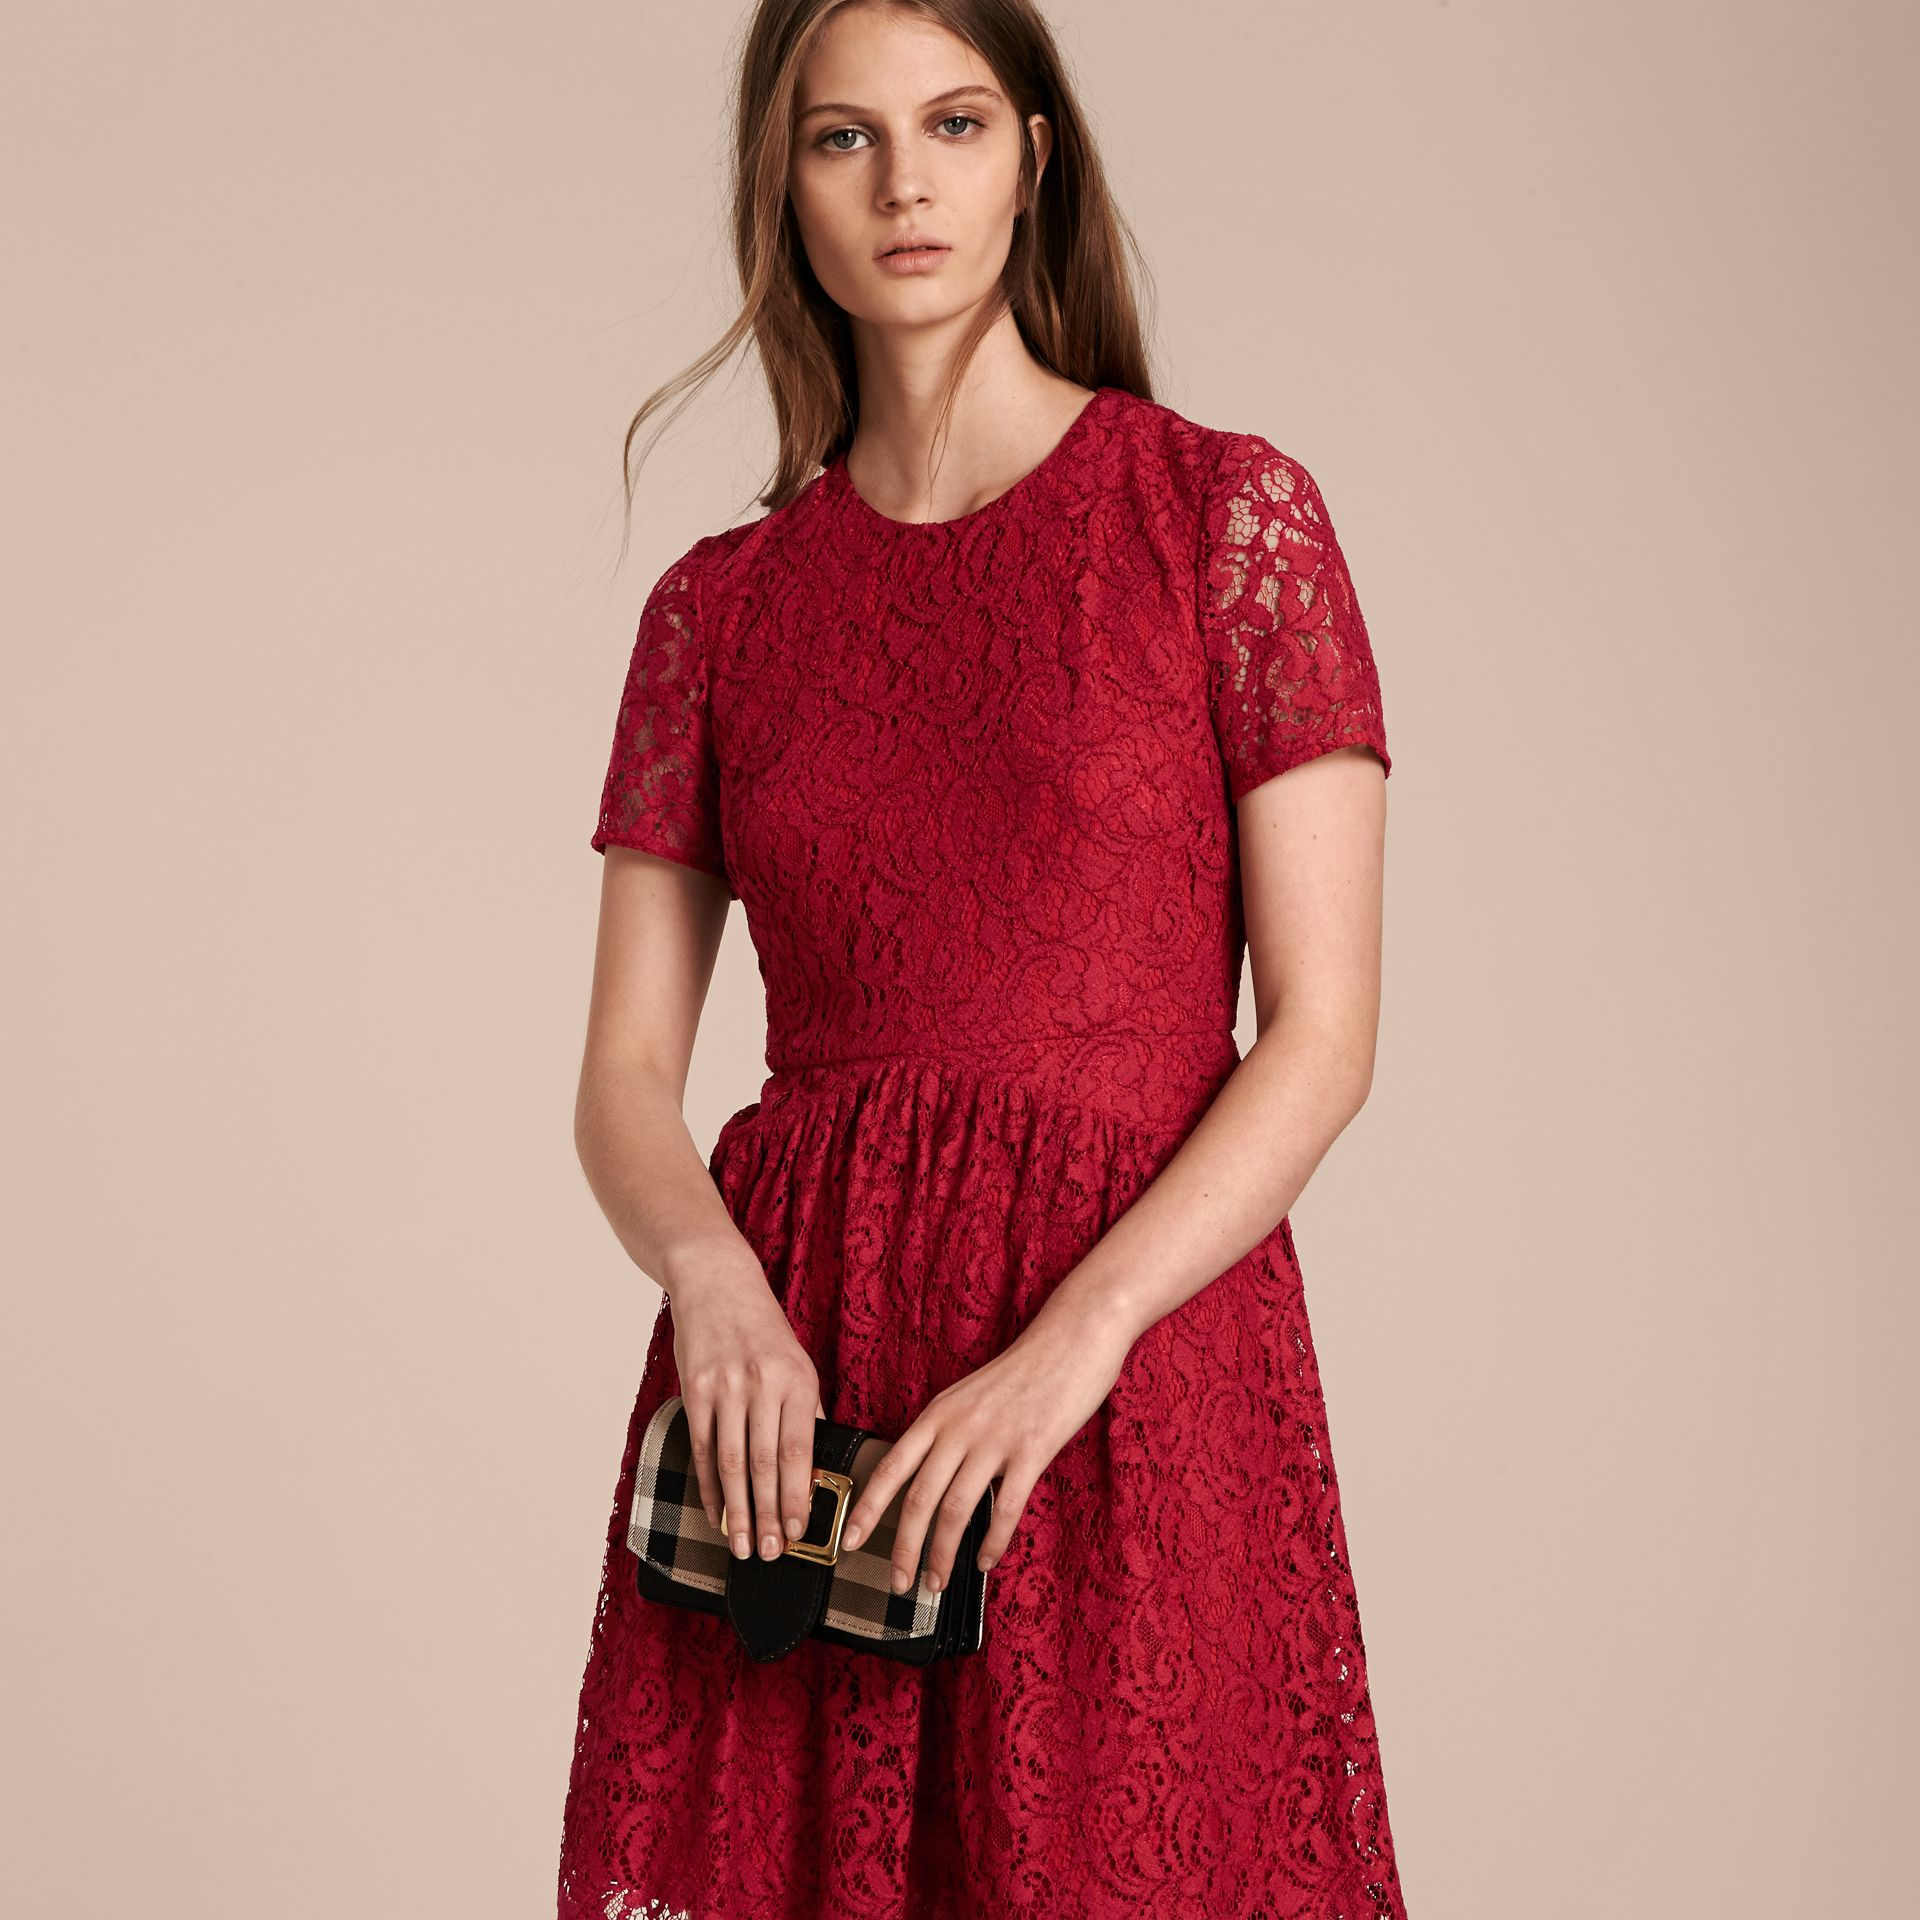 Parade red Fit-and-flare Dropped-waist Lace Dress Parade Red - gallery image 6